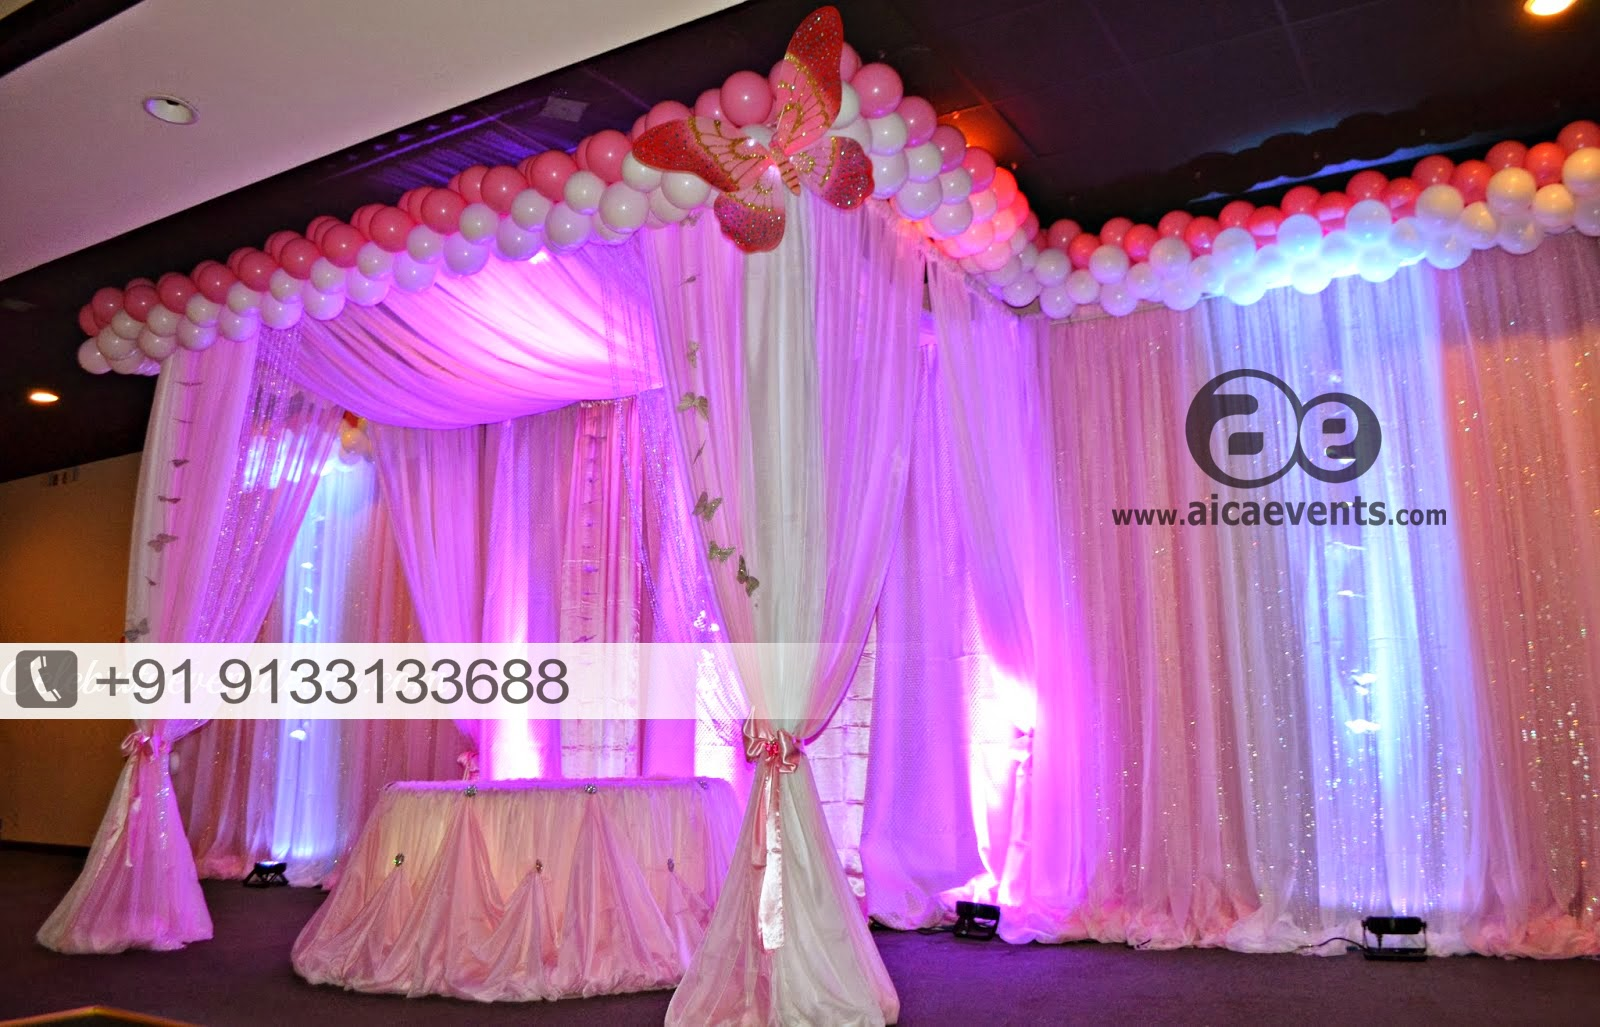 Aicaevents India: Pretty in Pink 1st Birthday party